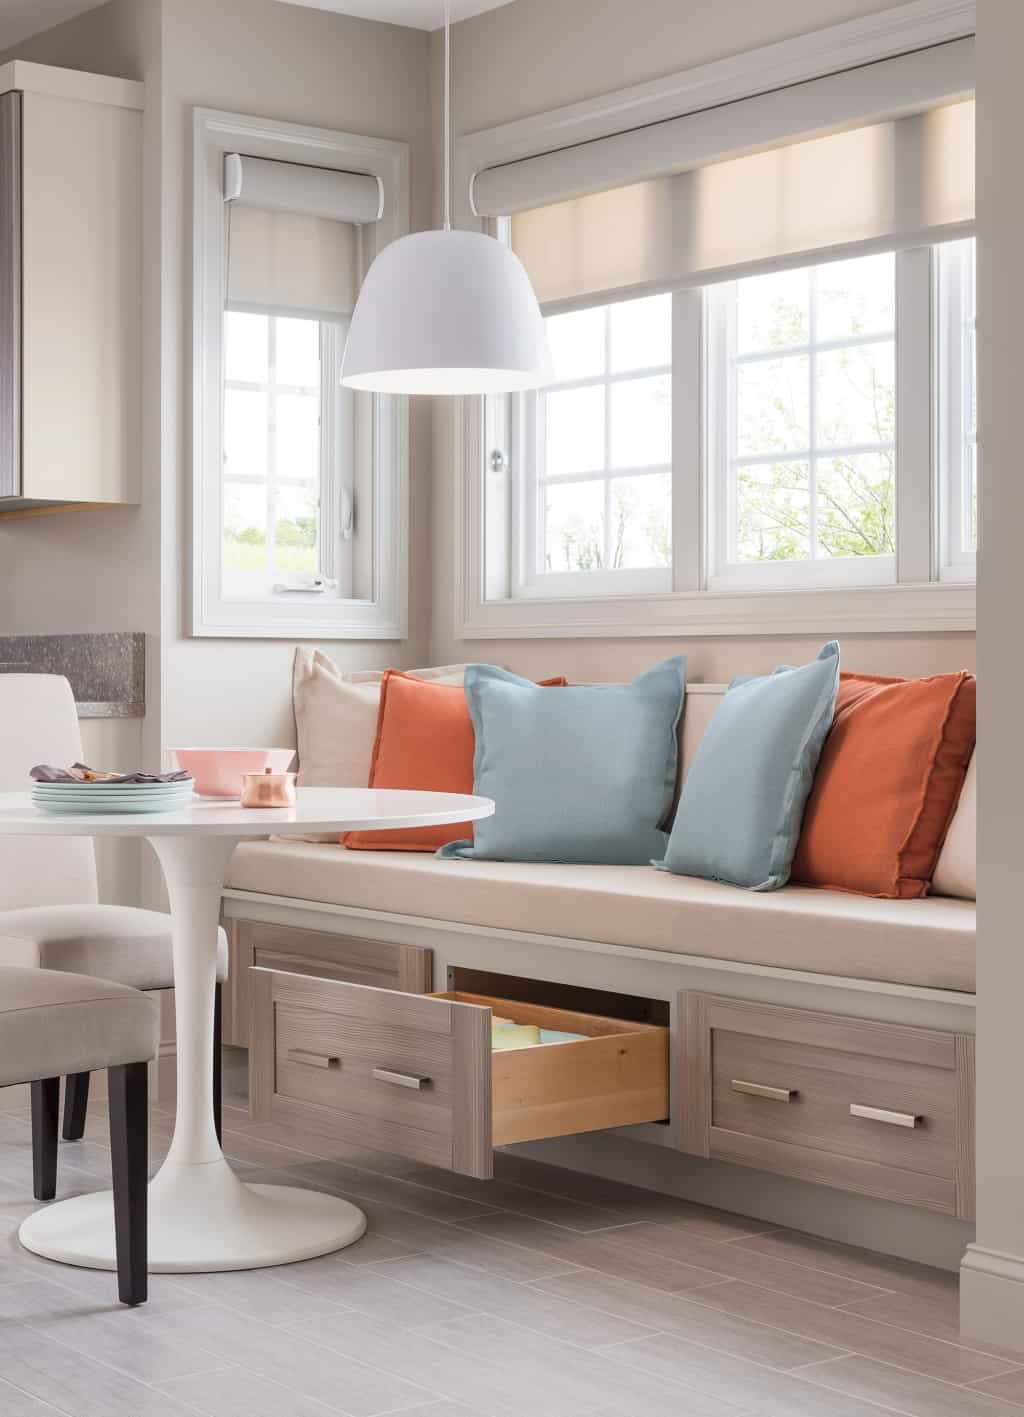 folding tables for sale Inspirational furniture round tables for sale foldable table banquette seating